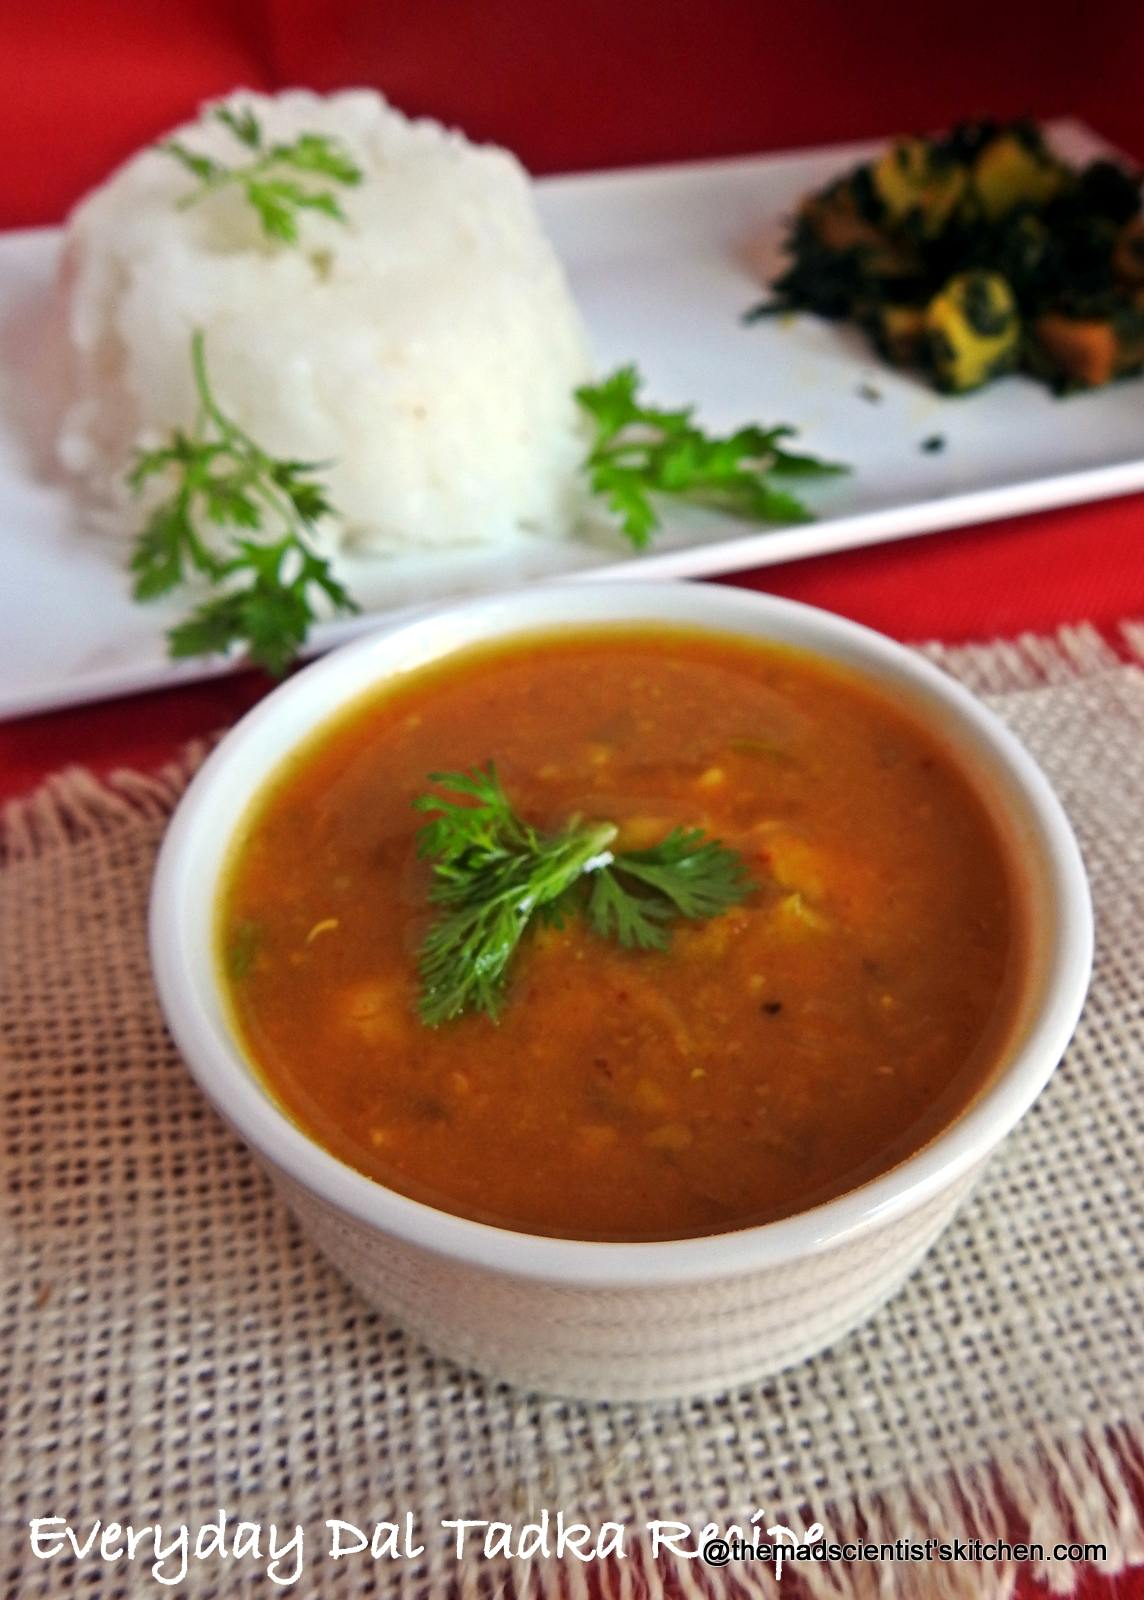 Everyday Dal Tadka Recipe